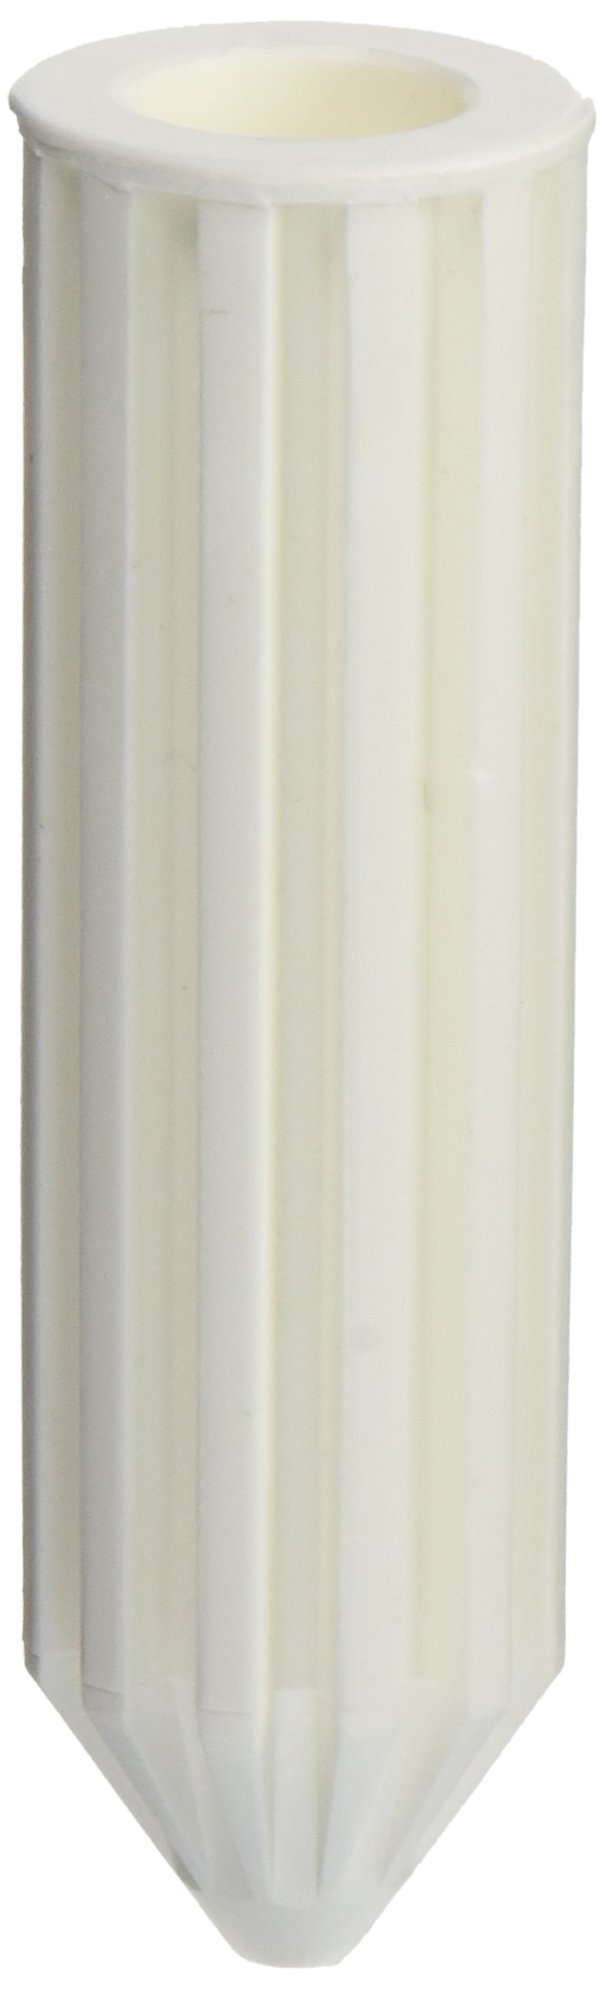 Corning LSE 480140 Adapters for 10/15mL Tubes in 50mL Rotor (Case of 6)